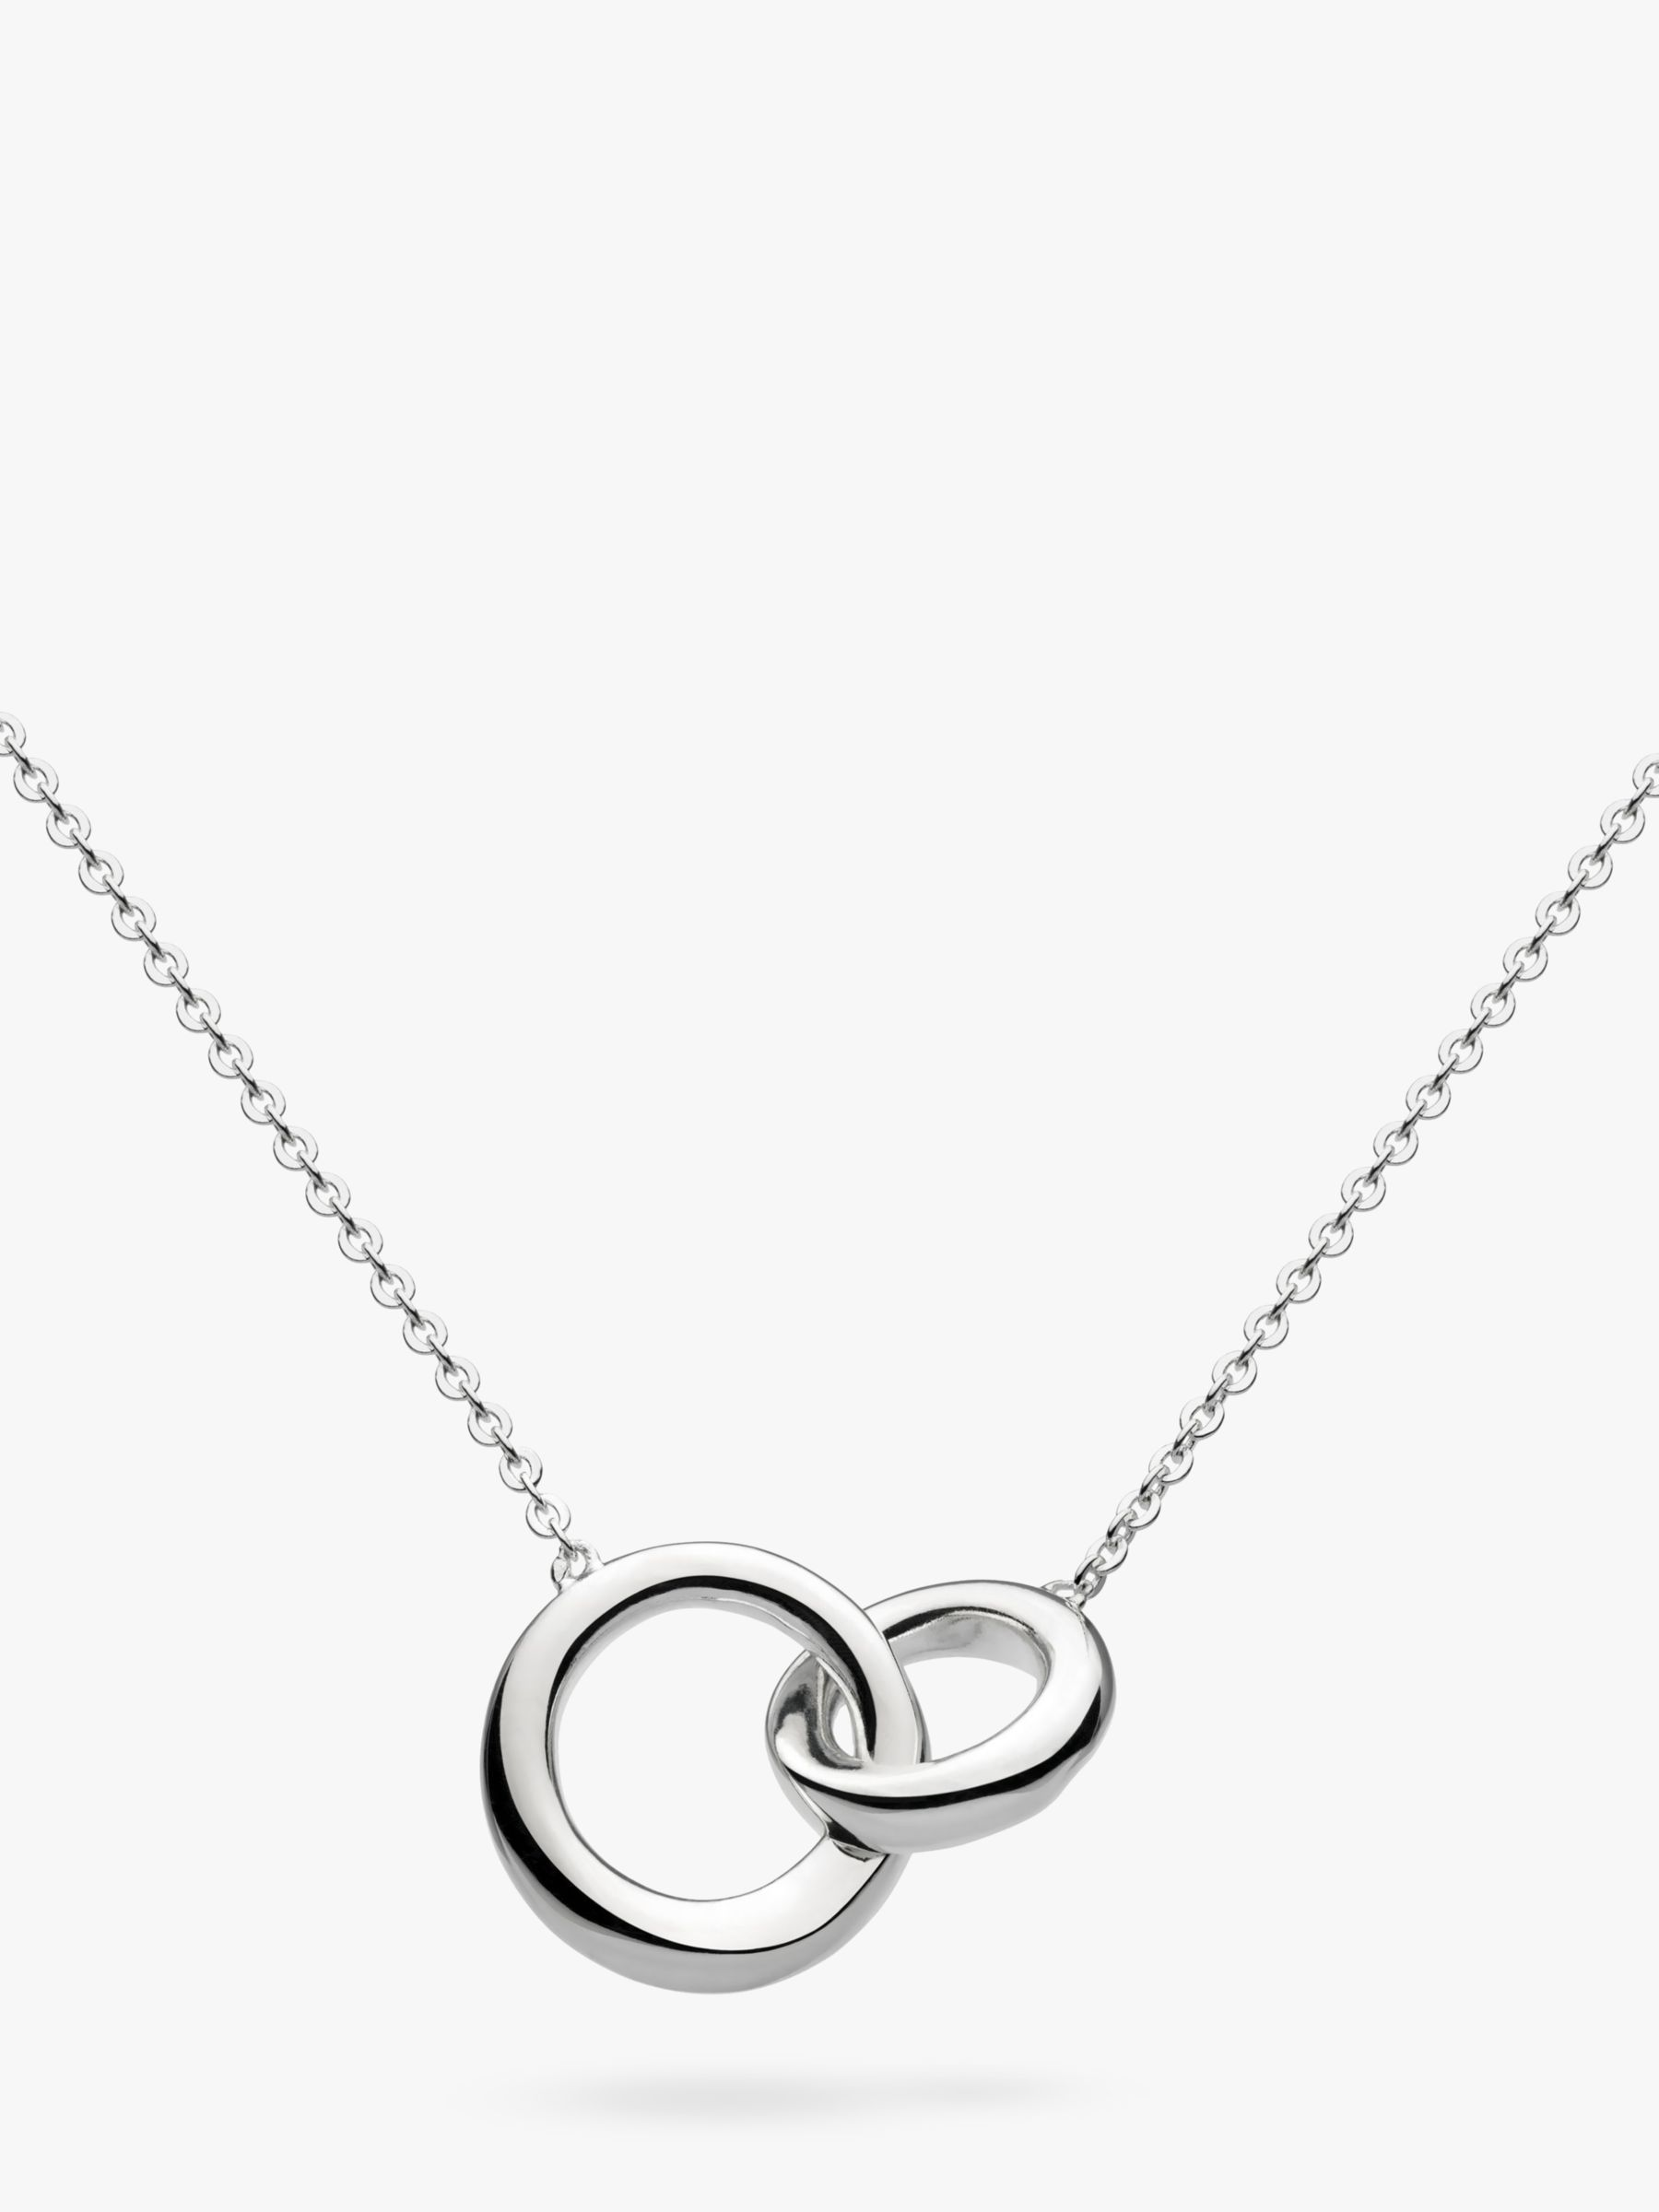 Kit Heath Kit Heath Bevel Curve Interlink Ring Pendant Necklace, Silver